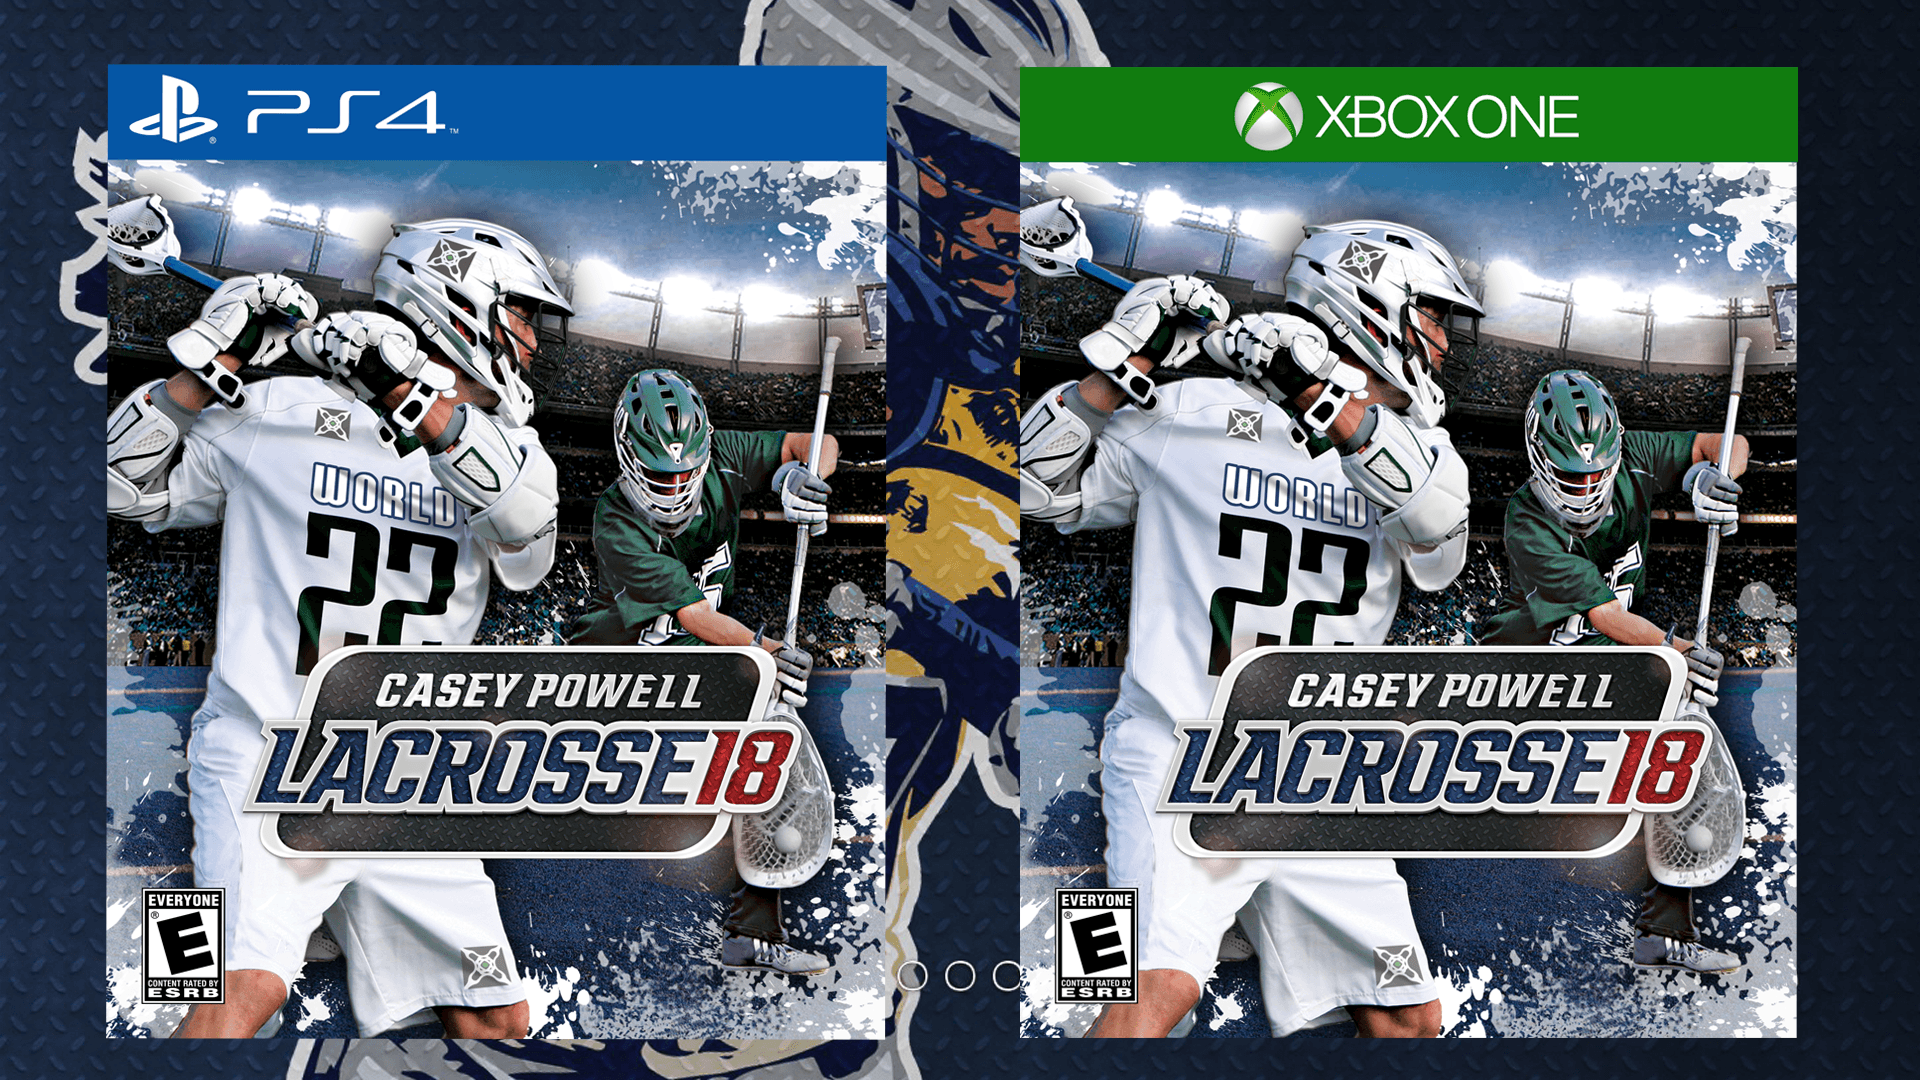 casey-powell-lacrosse-18-covers.png